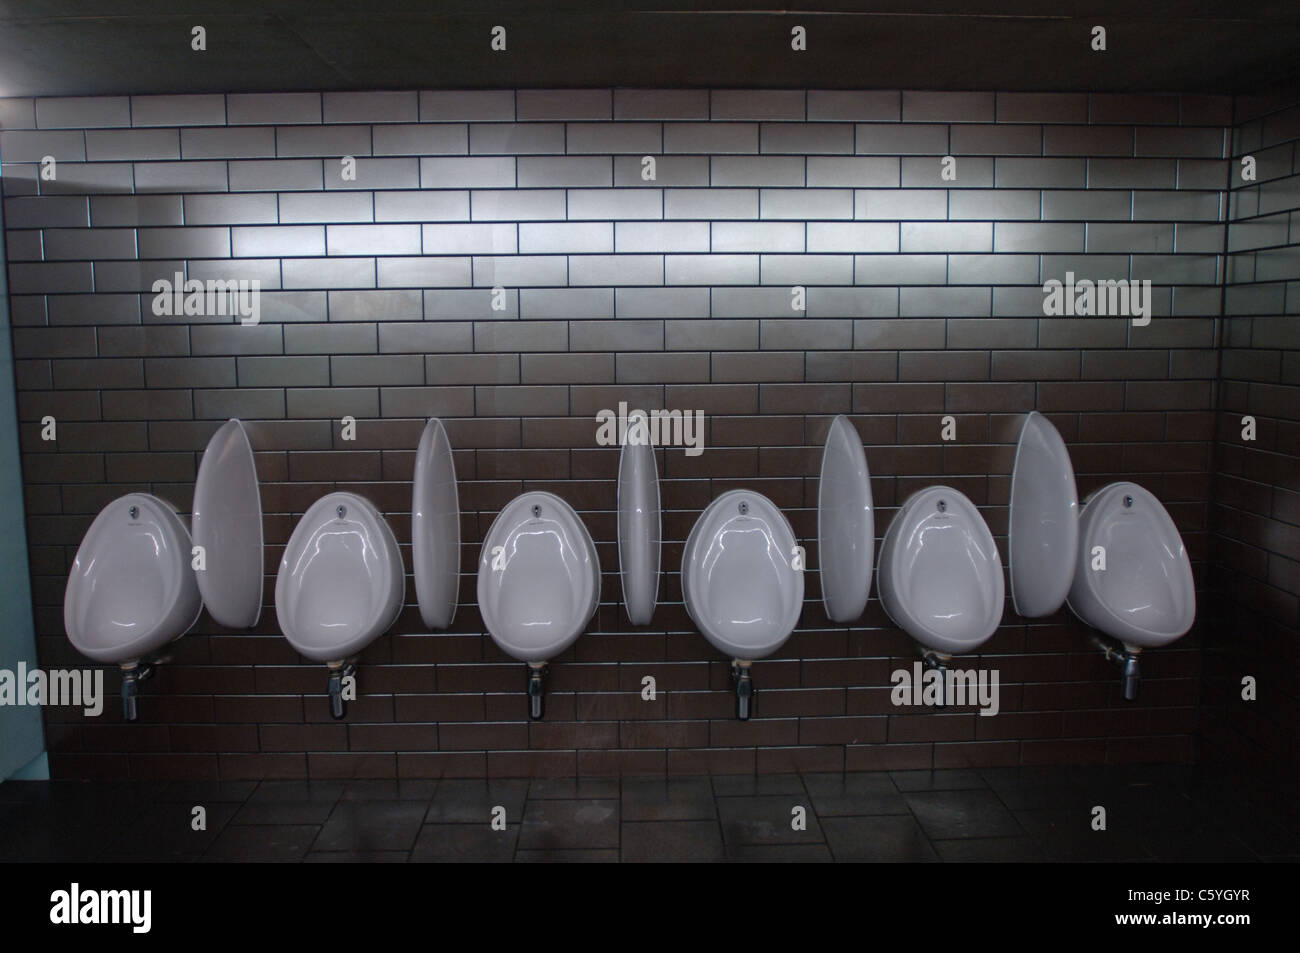 Row of six wall mounted urinals in a public toilet for men - Stock Image